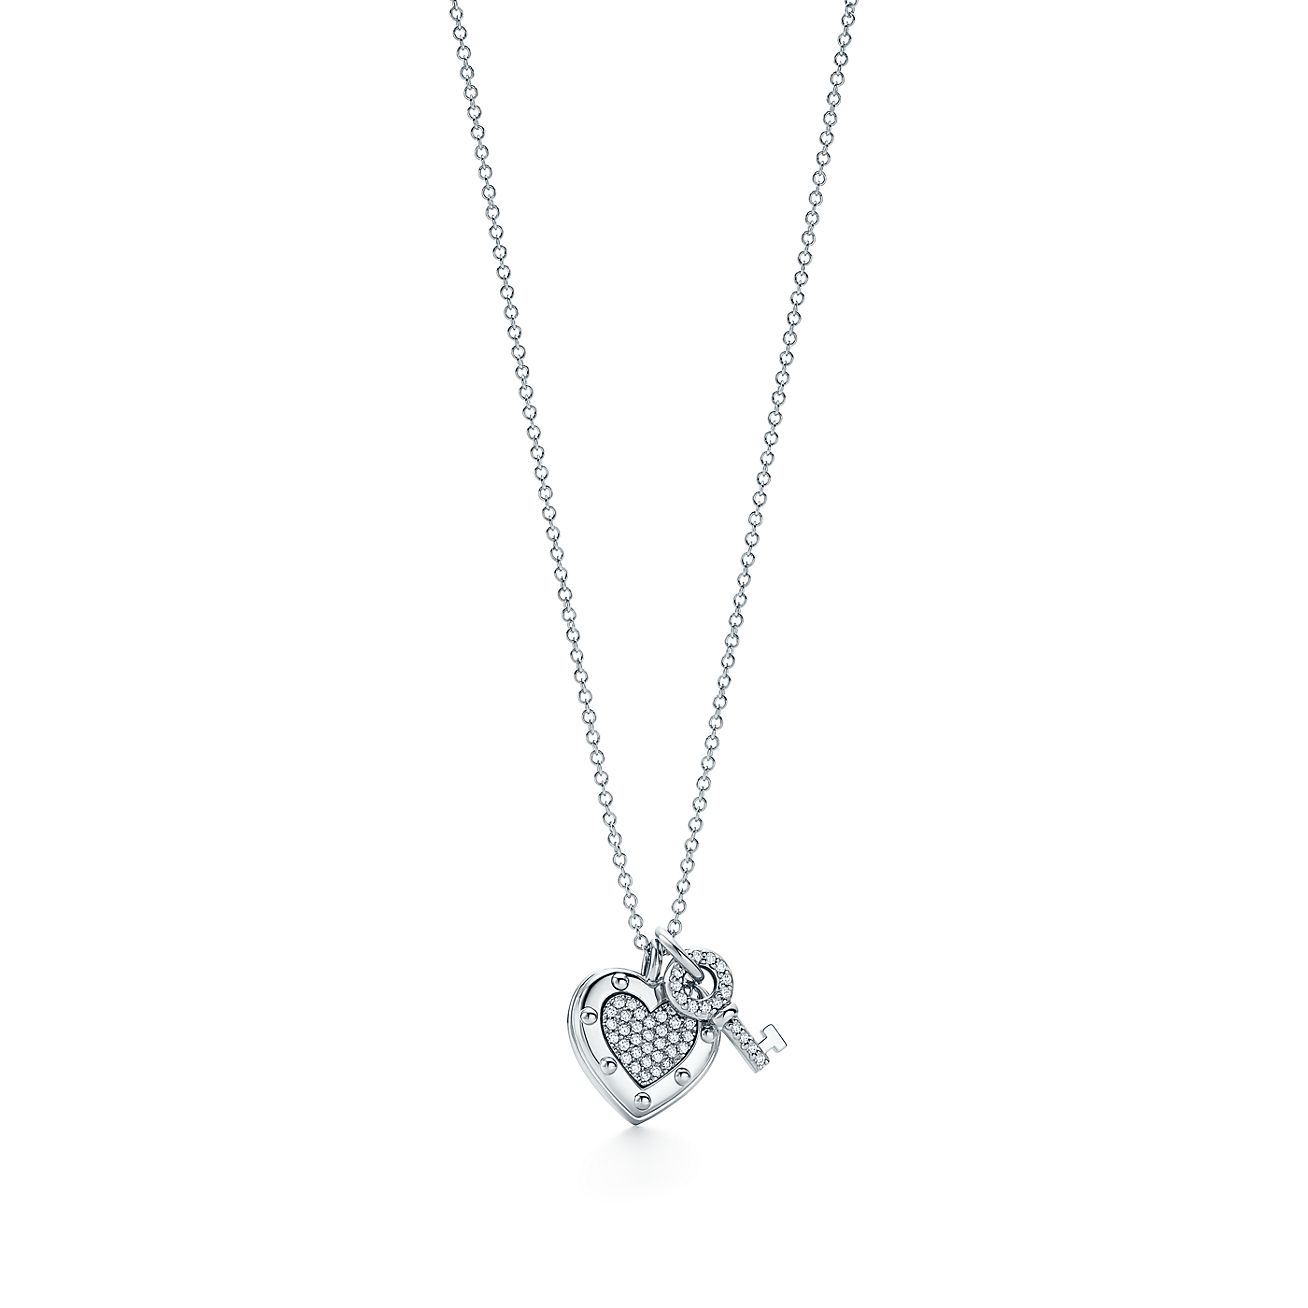 Return To Tiffany Love Heart Tag Key Pendant In 18k White Gold With Diamonds Tiffany Co